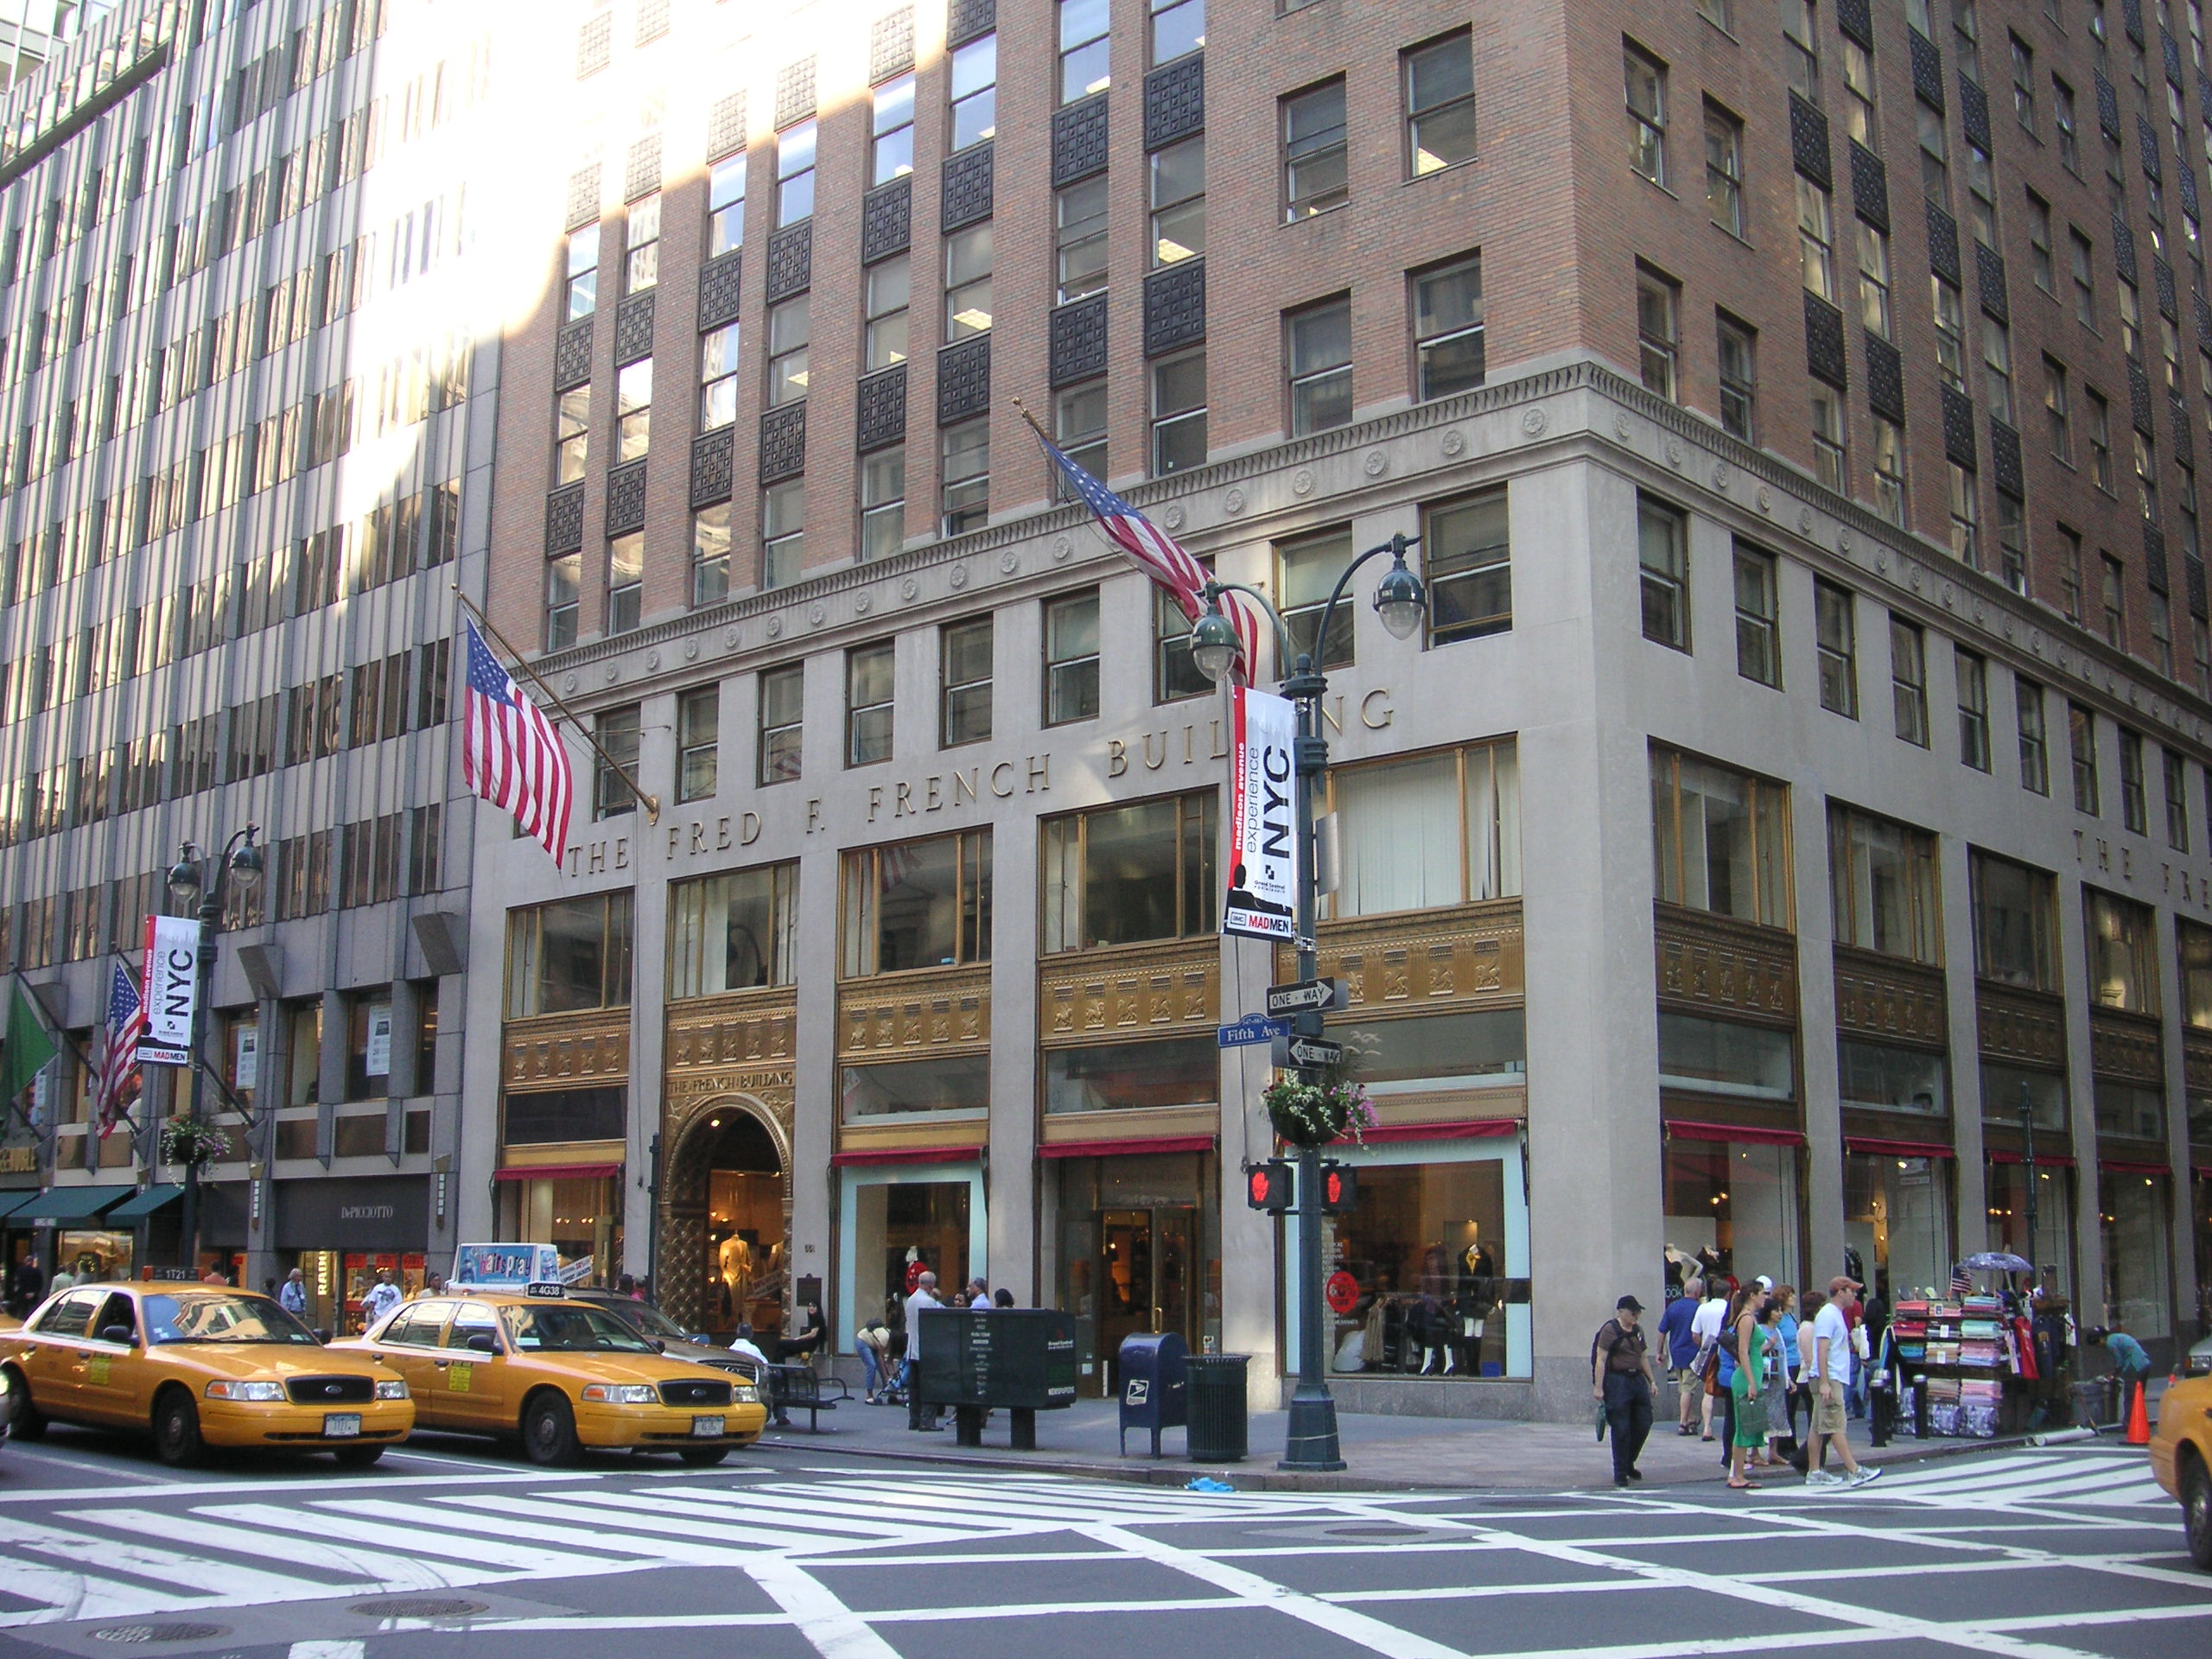 5th Avenue New York The Most Expensive Shopping Street In The World Places Boomsbeat